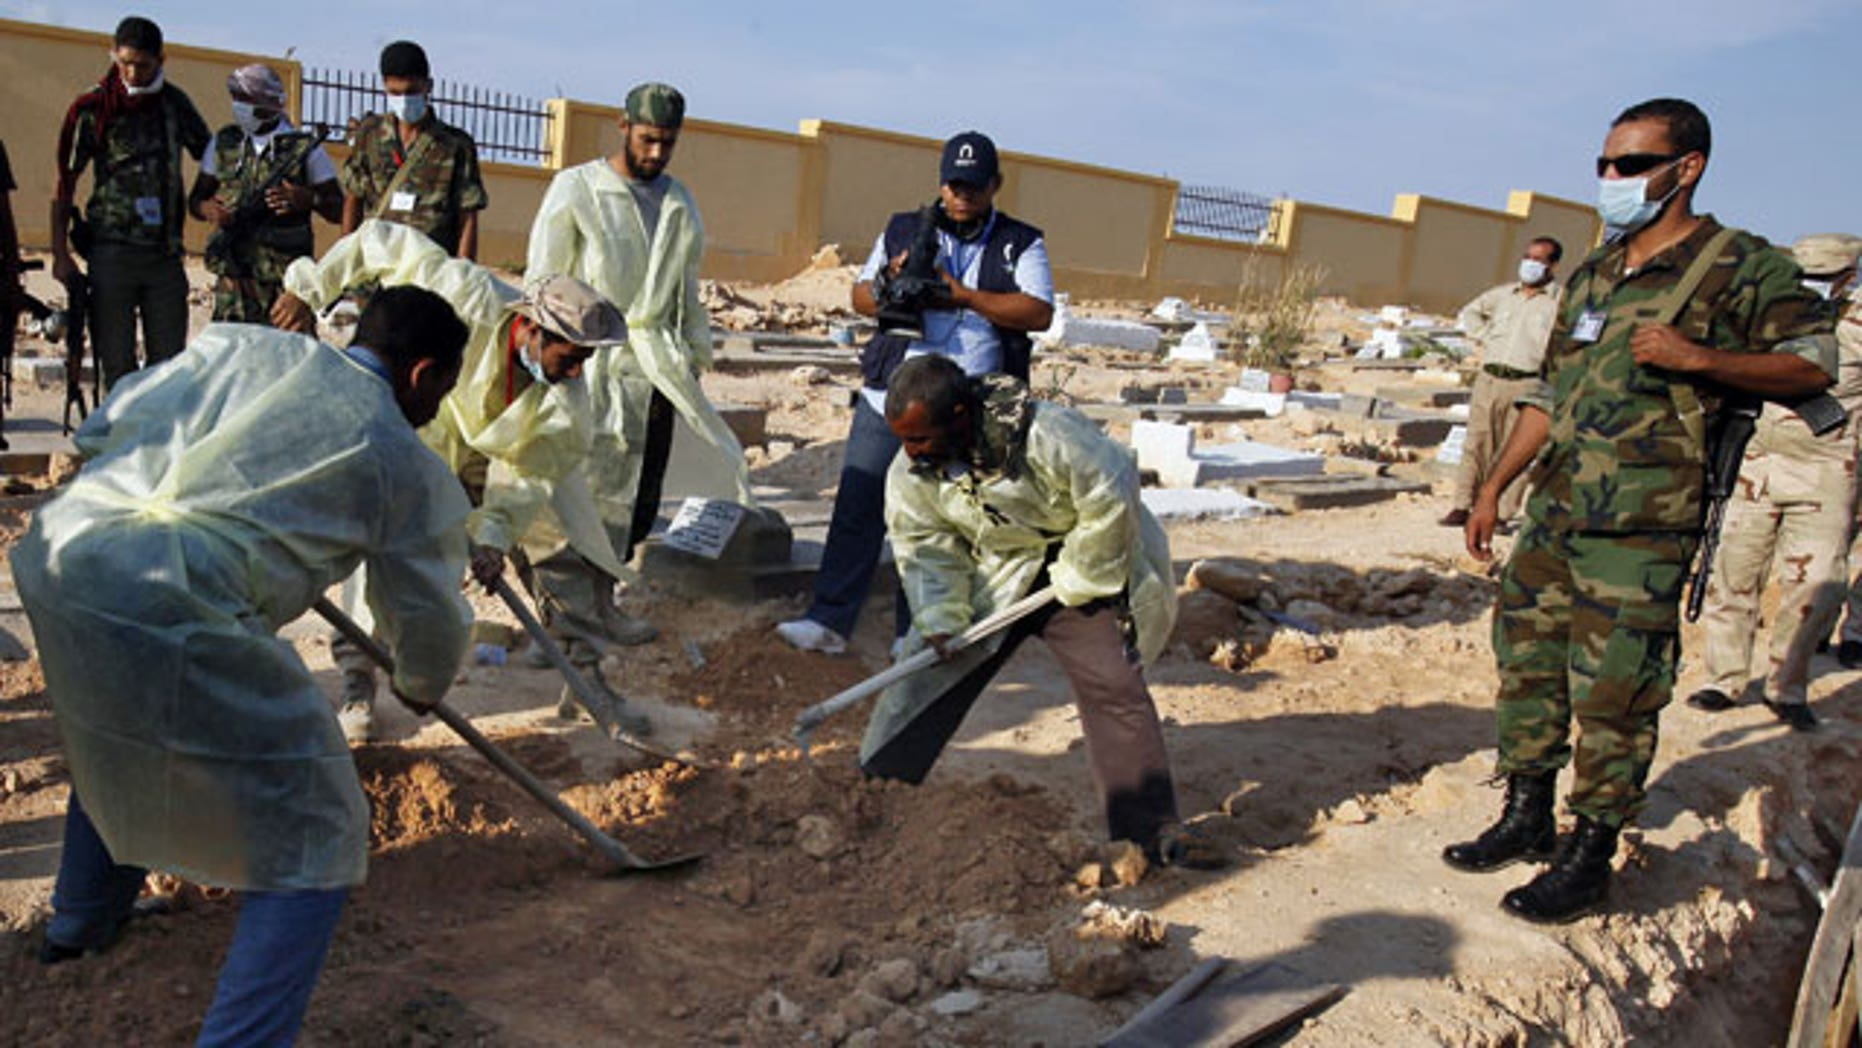 Libyan medical team and revolutionary fighters dig at a mass grave in Gargarish, on the coast some four miles, from the center of Tripoli, Libya, containing the bodies of more than 200 people who were killed in the chaos surrounding the rebel assault that ousted Muammar Qaddafi.